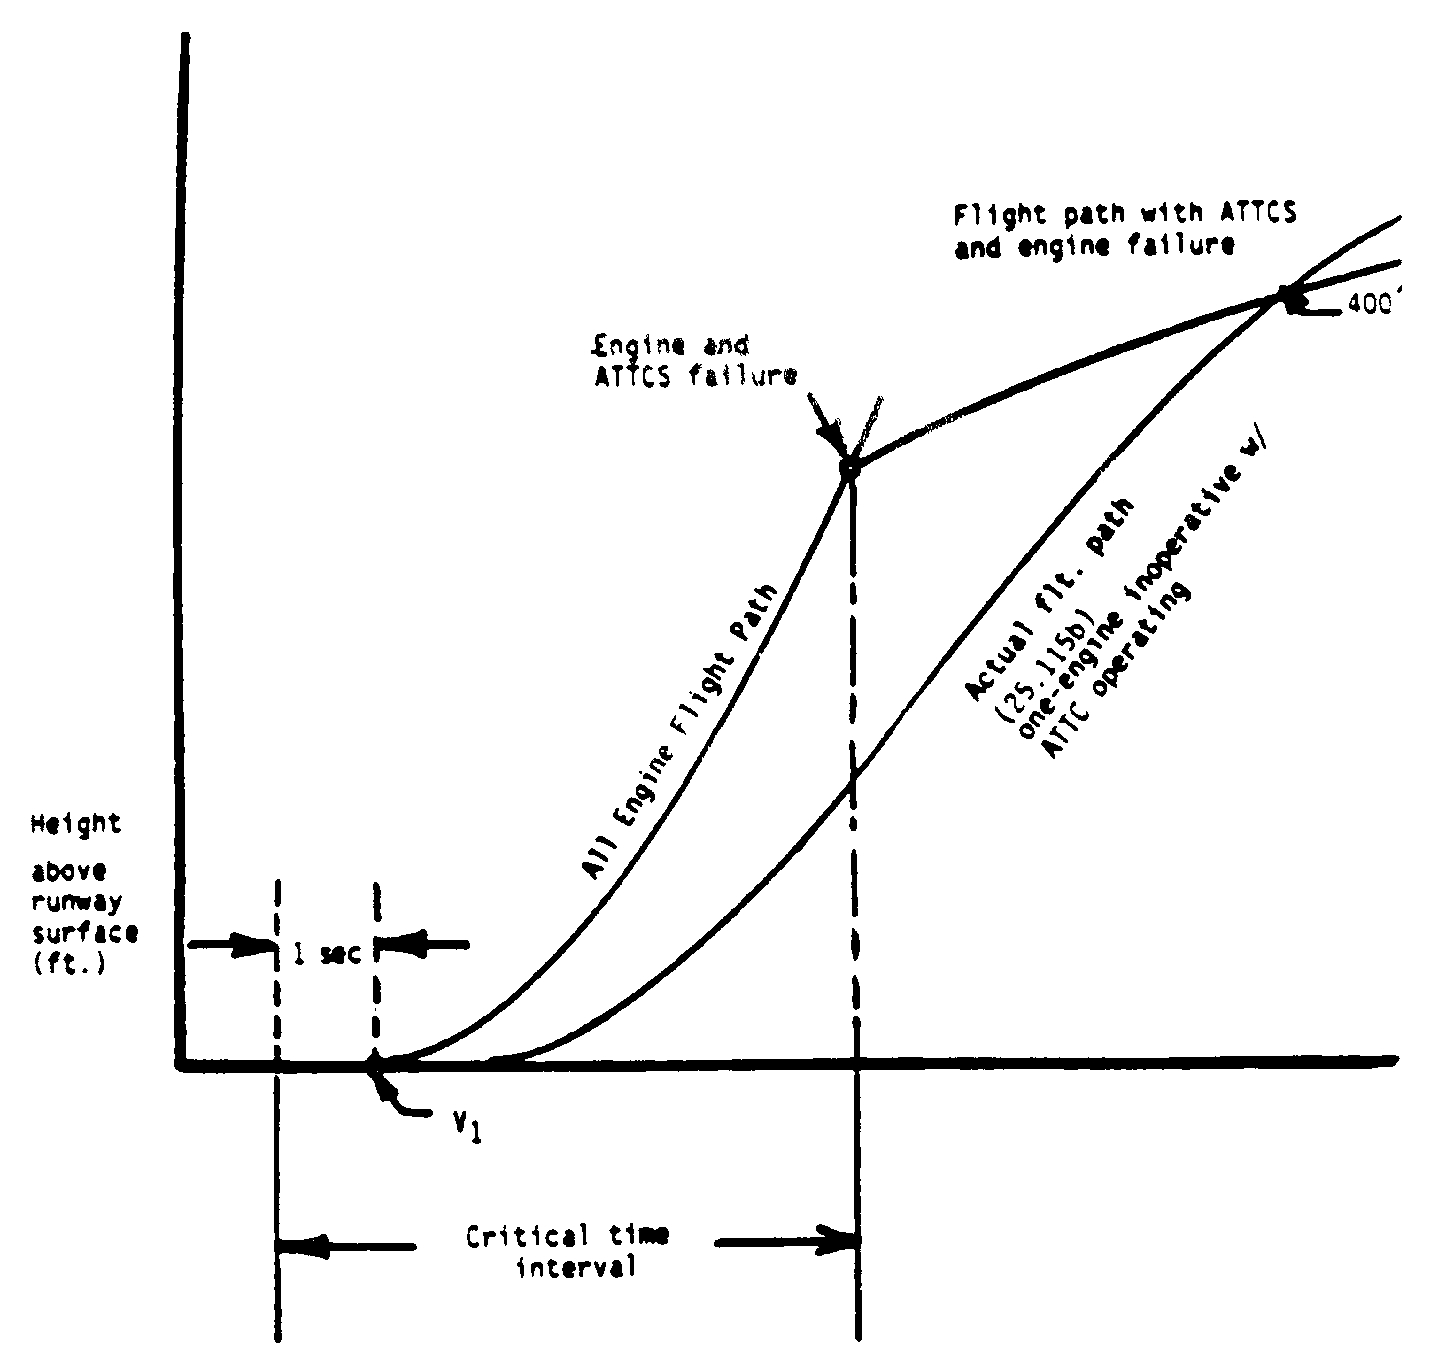 Graphic of (b) Critical Time Interval. When conducting an ATTCS takeoff, the critical time interval is between V1 minus 1 second and a point on the minimum performance, all-engine flight path where, assuming a simultaneous occurrence of an engine and ATTCS failure, the resulting minimum flight path thereafter intersects the Part 25 required actual flight path at no less than 400 feet above the takeoff surface. This time interval is shown in the following illustration